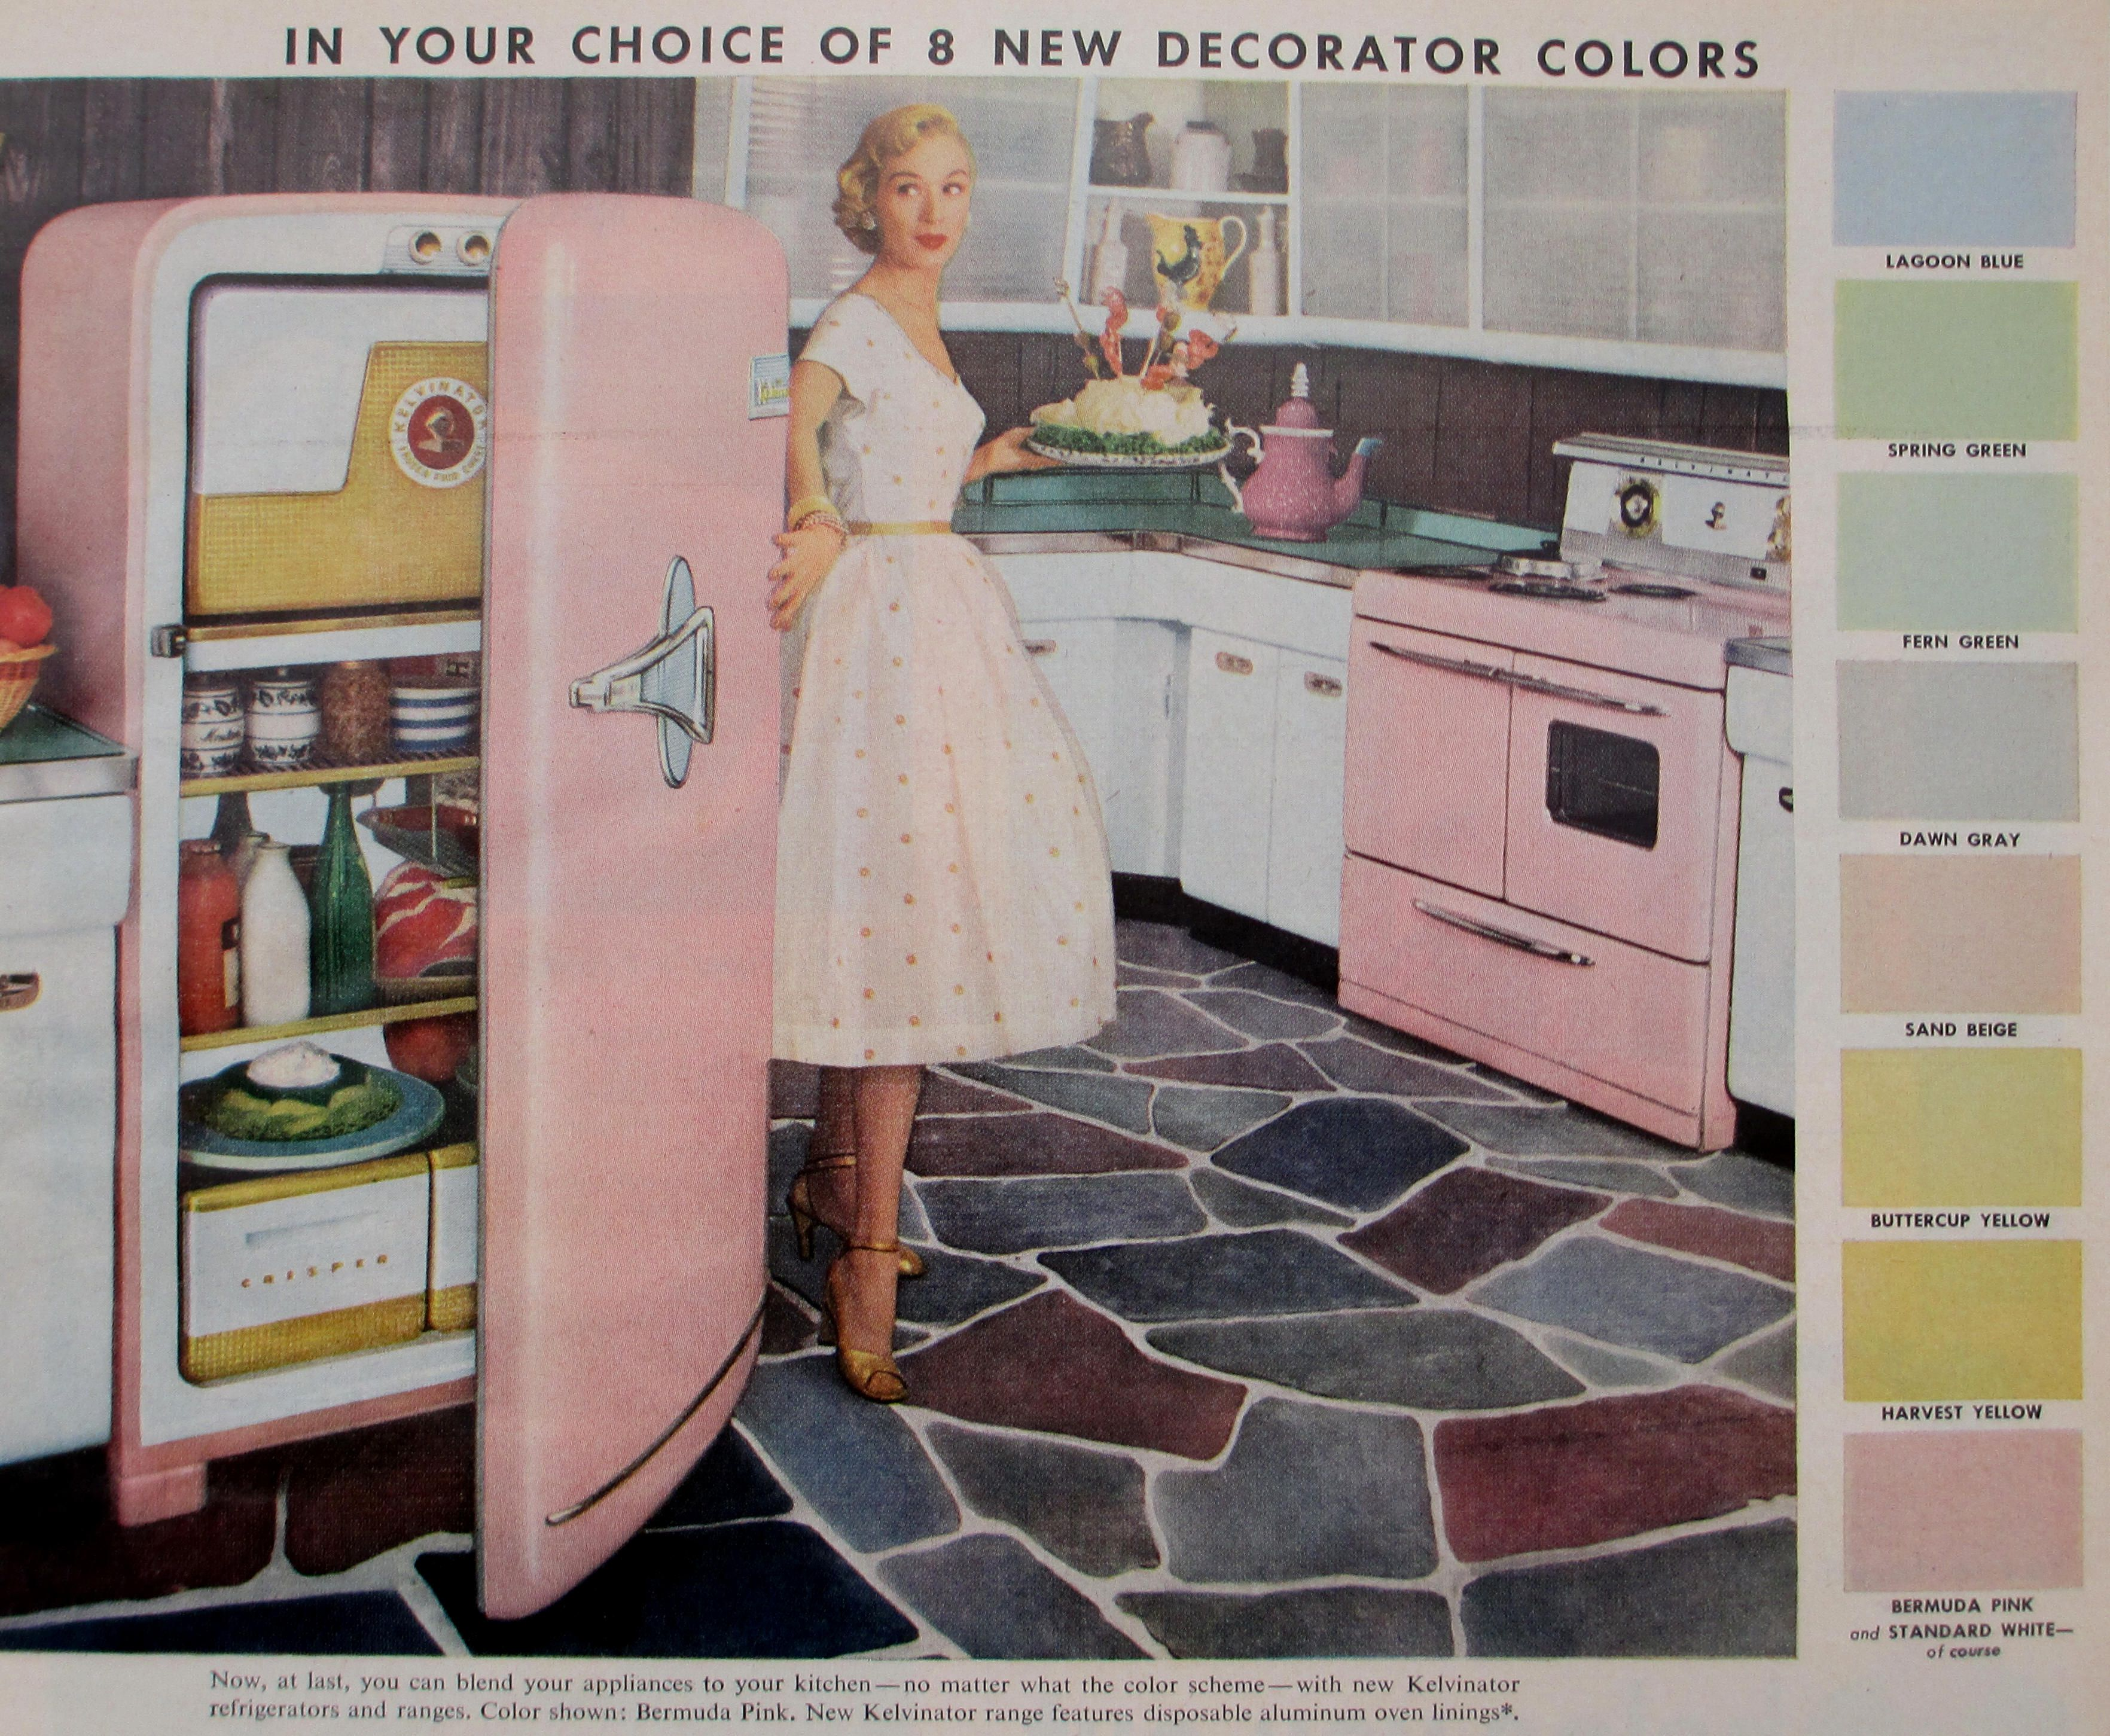 the kelvinator 1955 vintage pink refrigerator and its matching